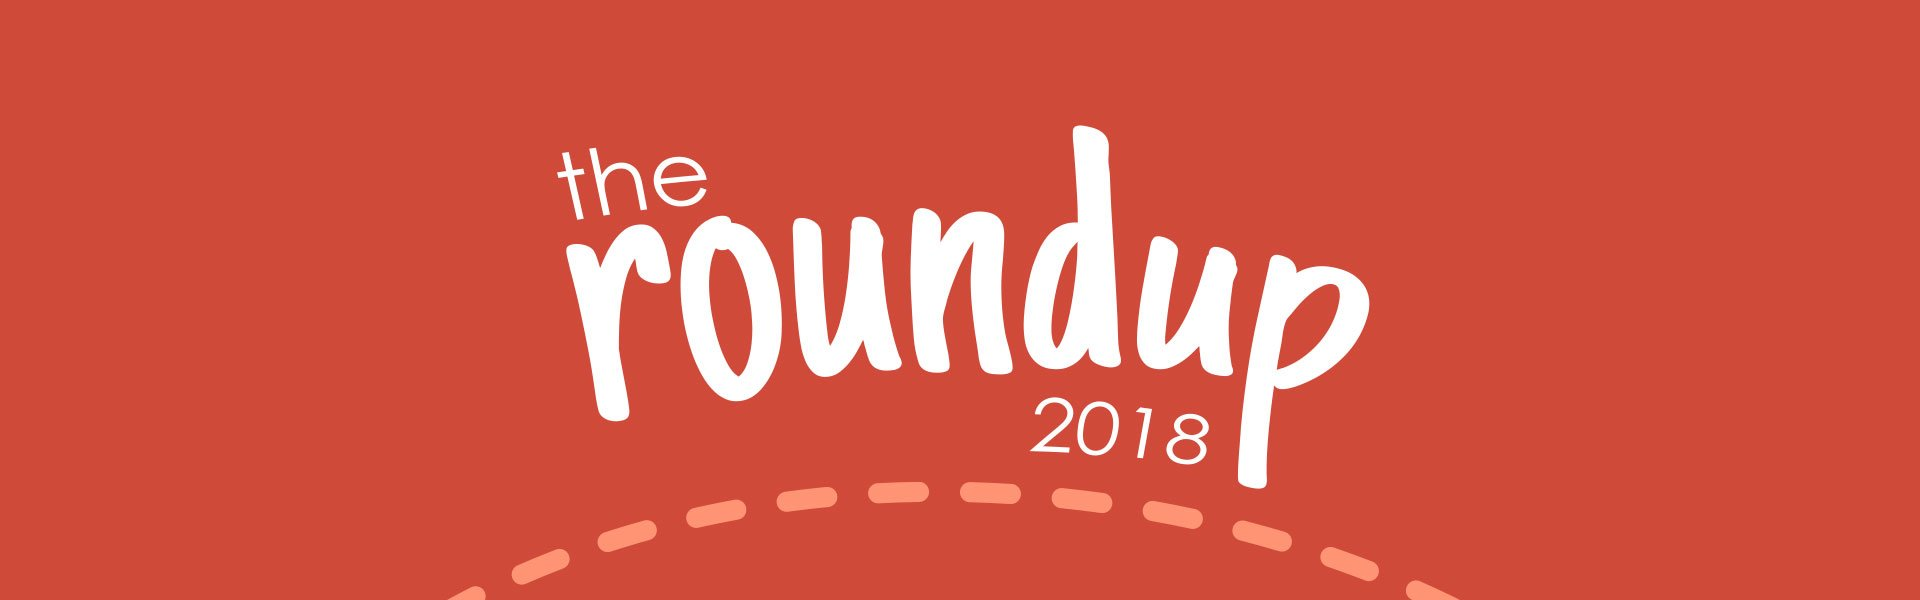 The roundup 2018